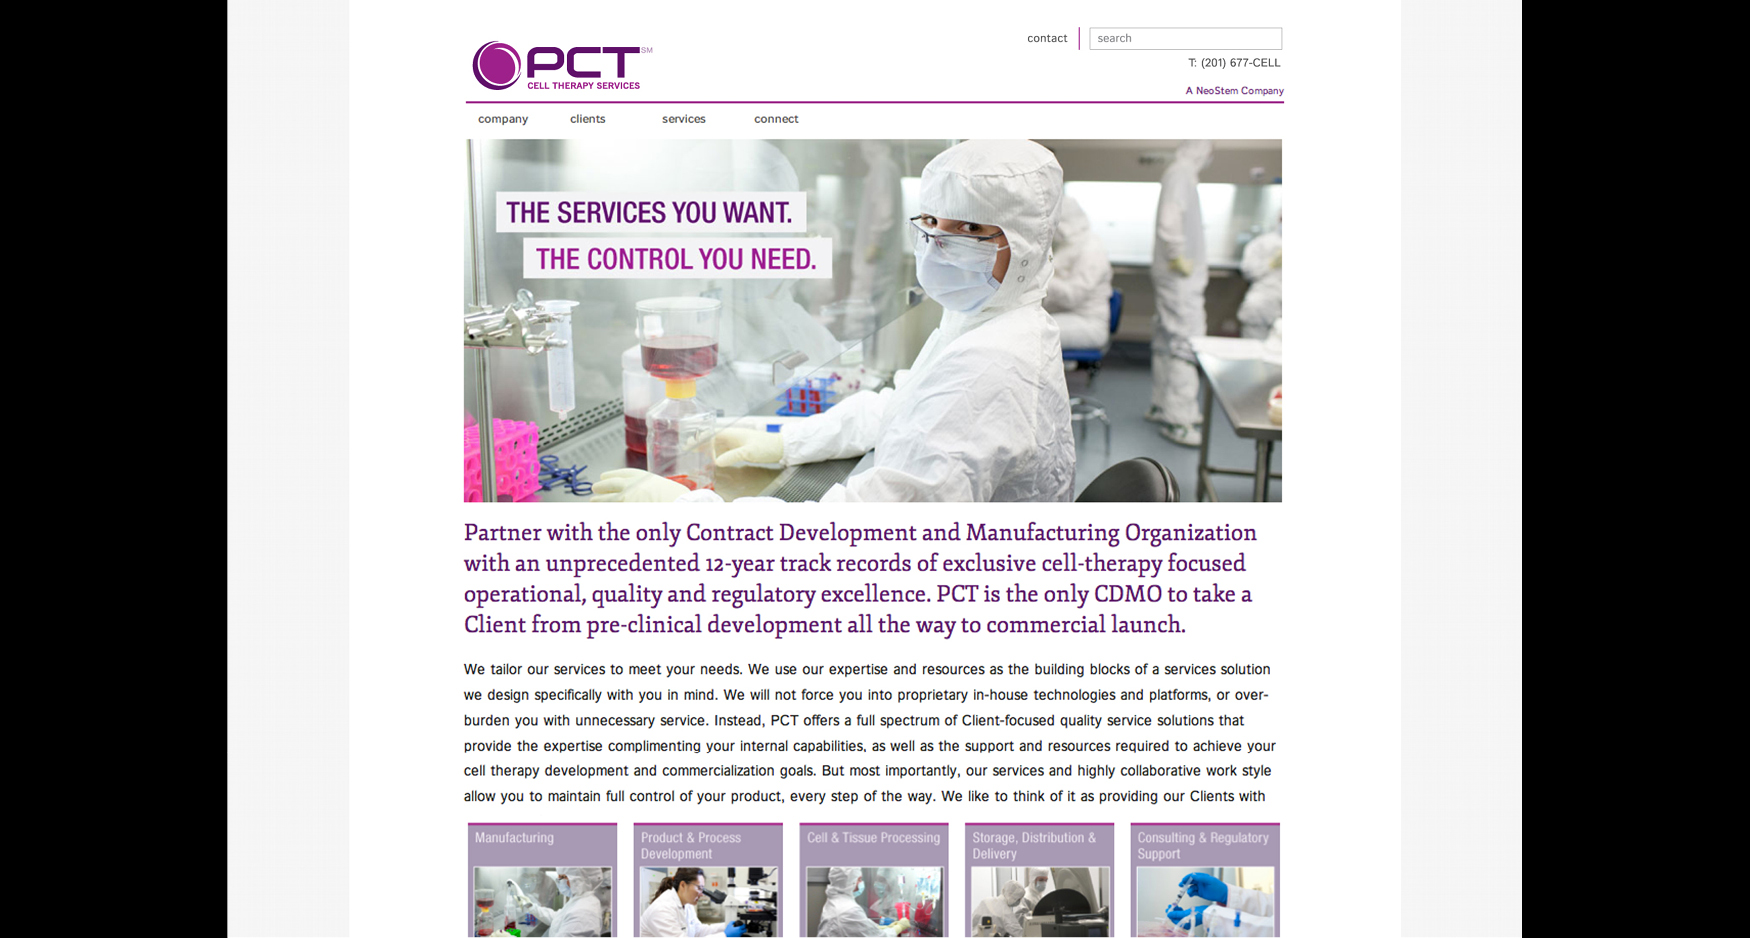 BP Large Website Images11 - PCT CELL THERAPY - CORPORATE WEBSITE